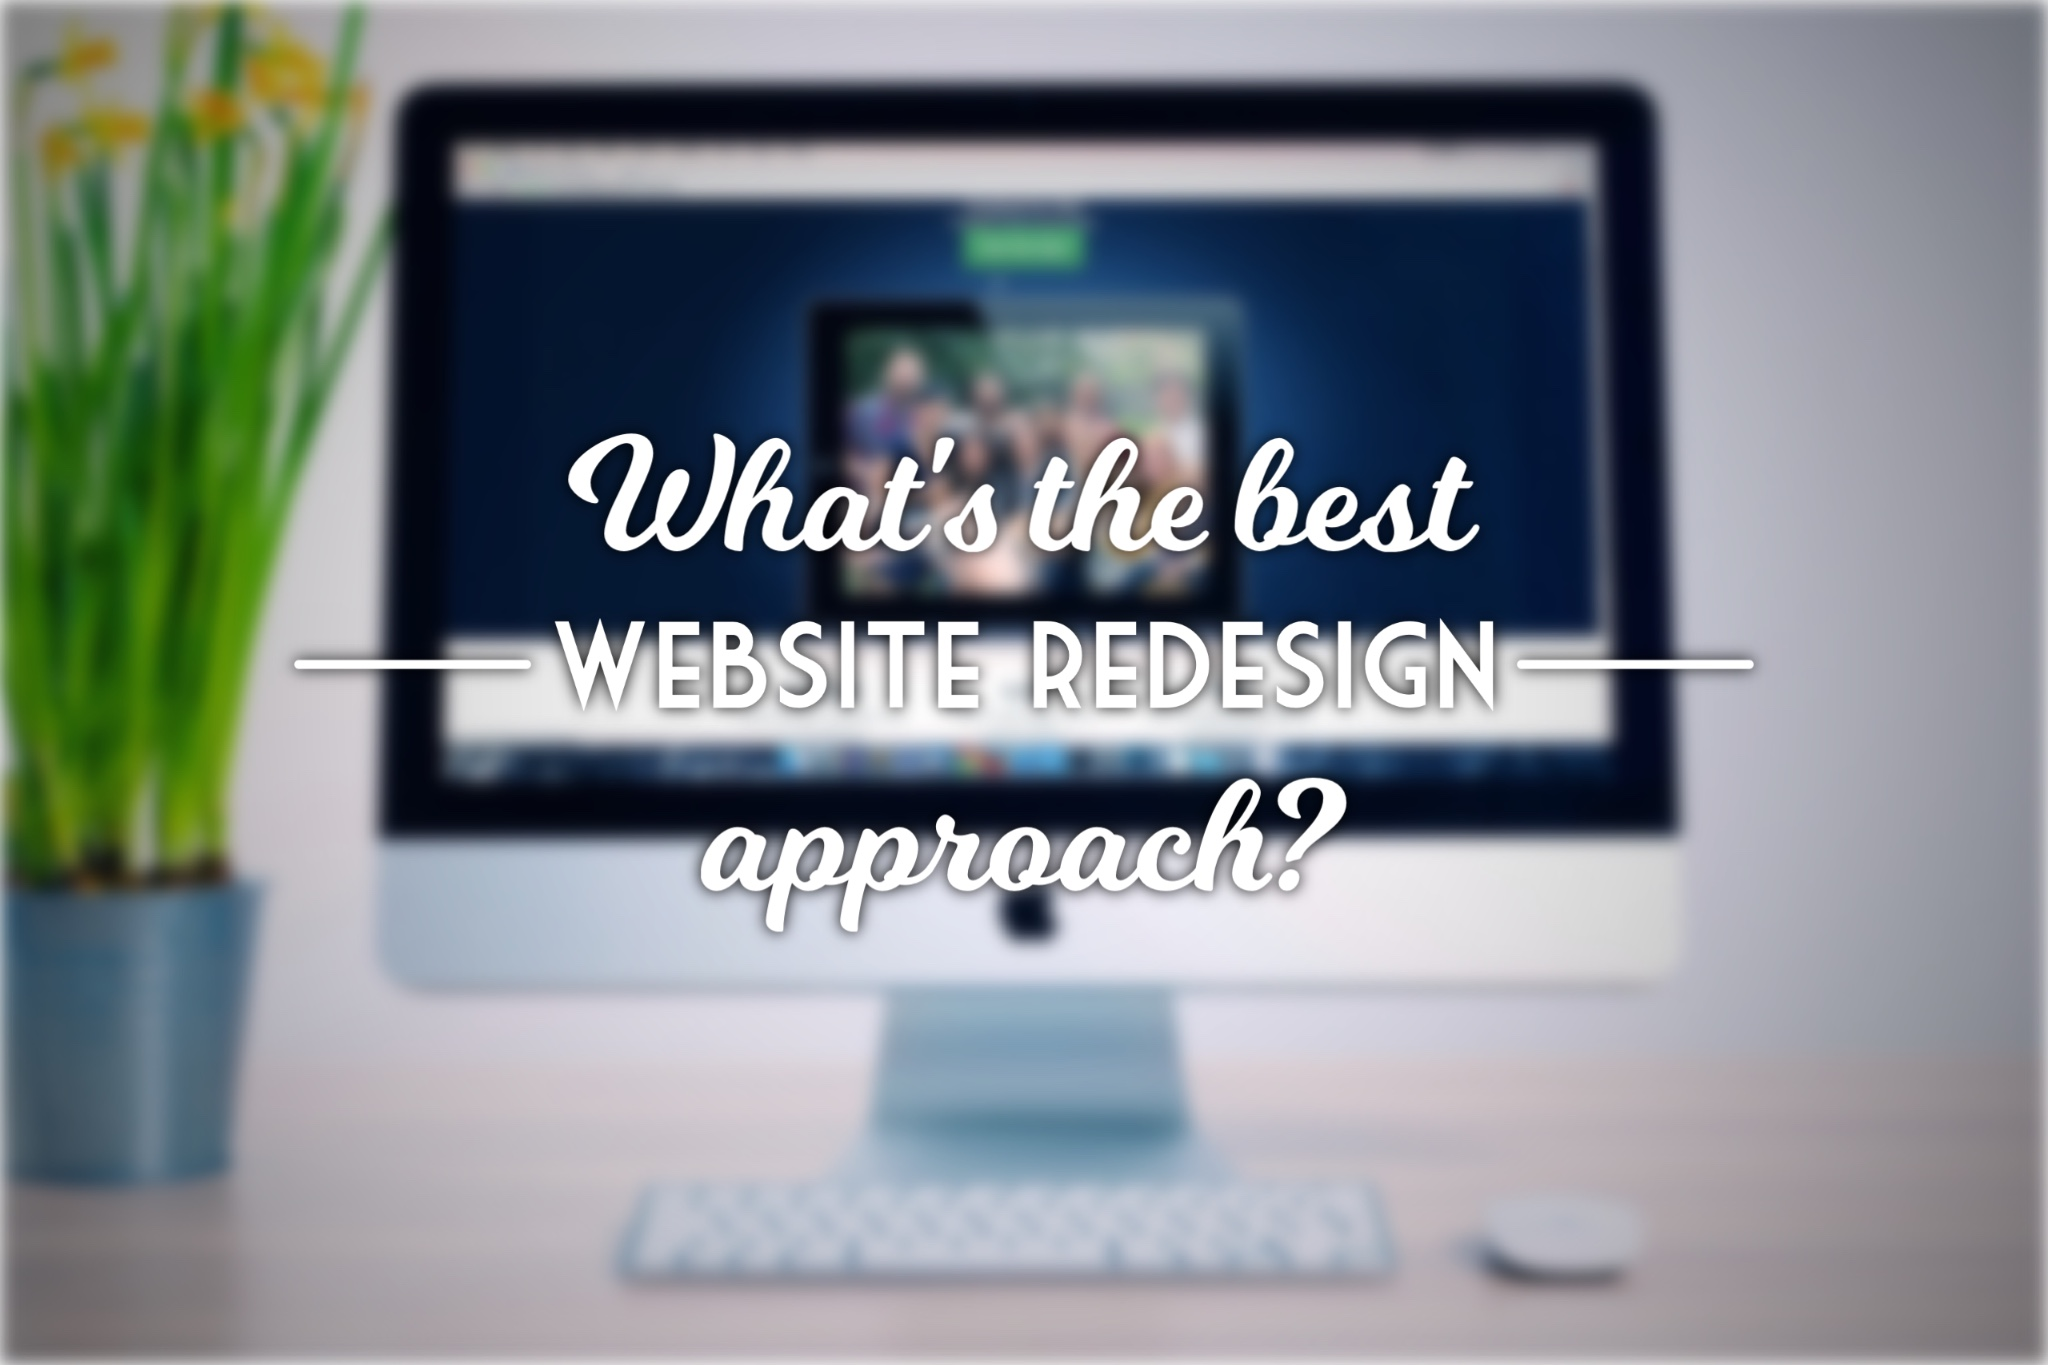 What's the best website redesign approach?